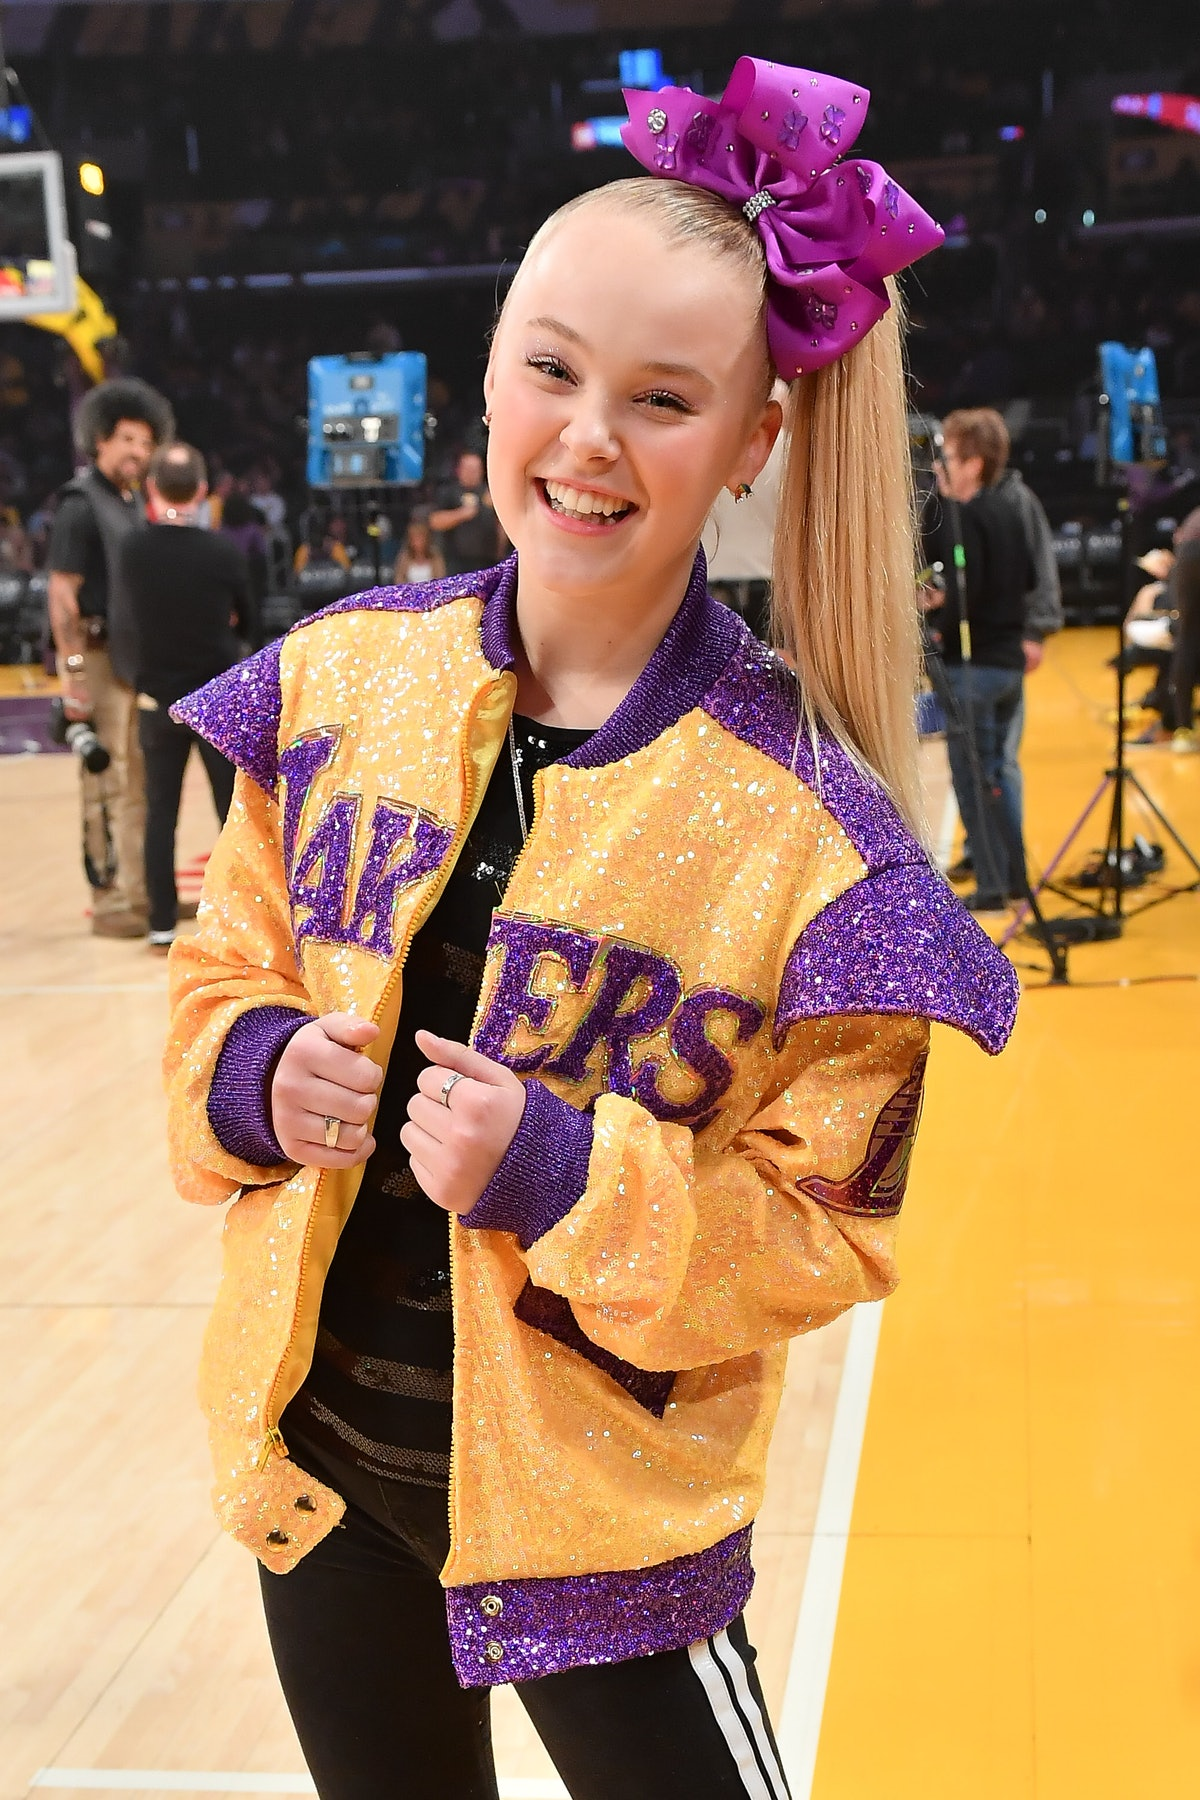 JoJo Siwa wears her signature hair bow as she attends a basketball game between the Los Angeles Lakers and Phoenix Suns.